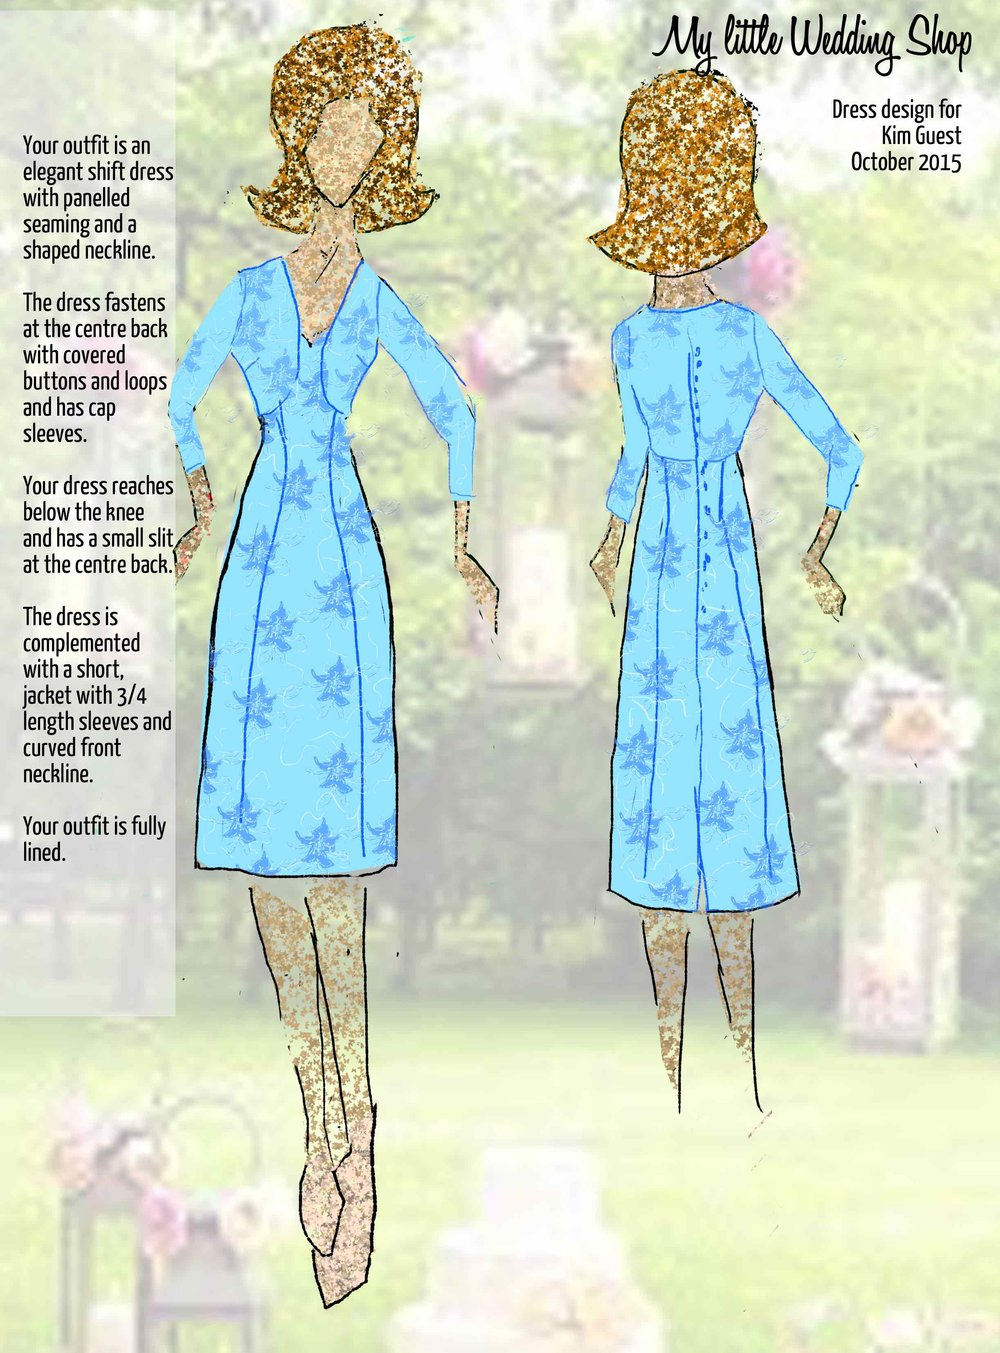 KG dress design  V1 small.jpg